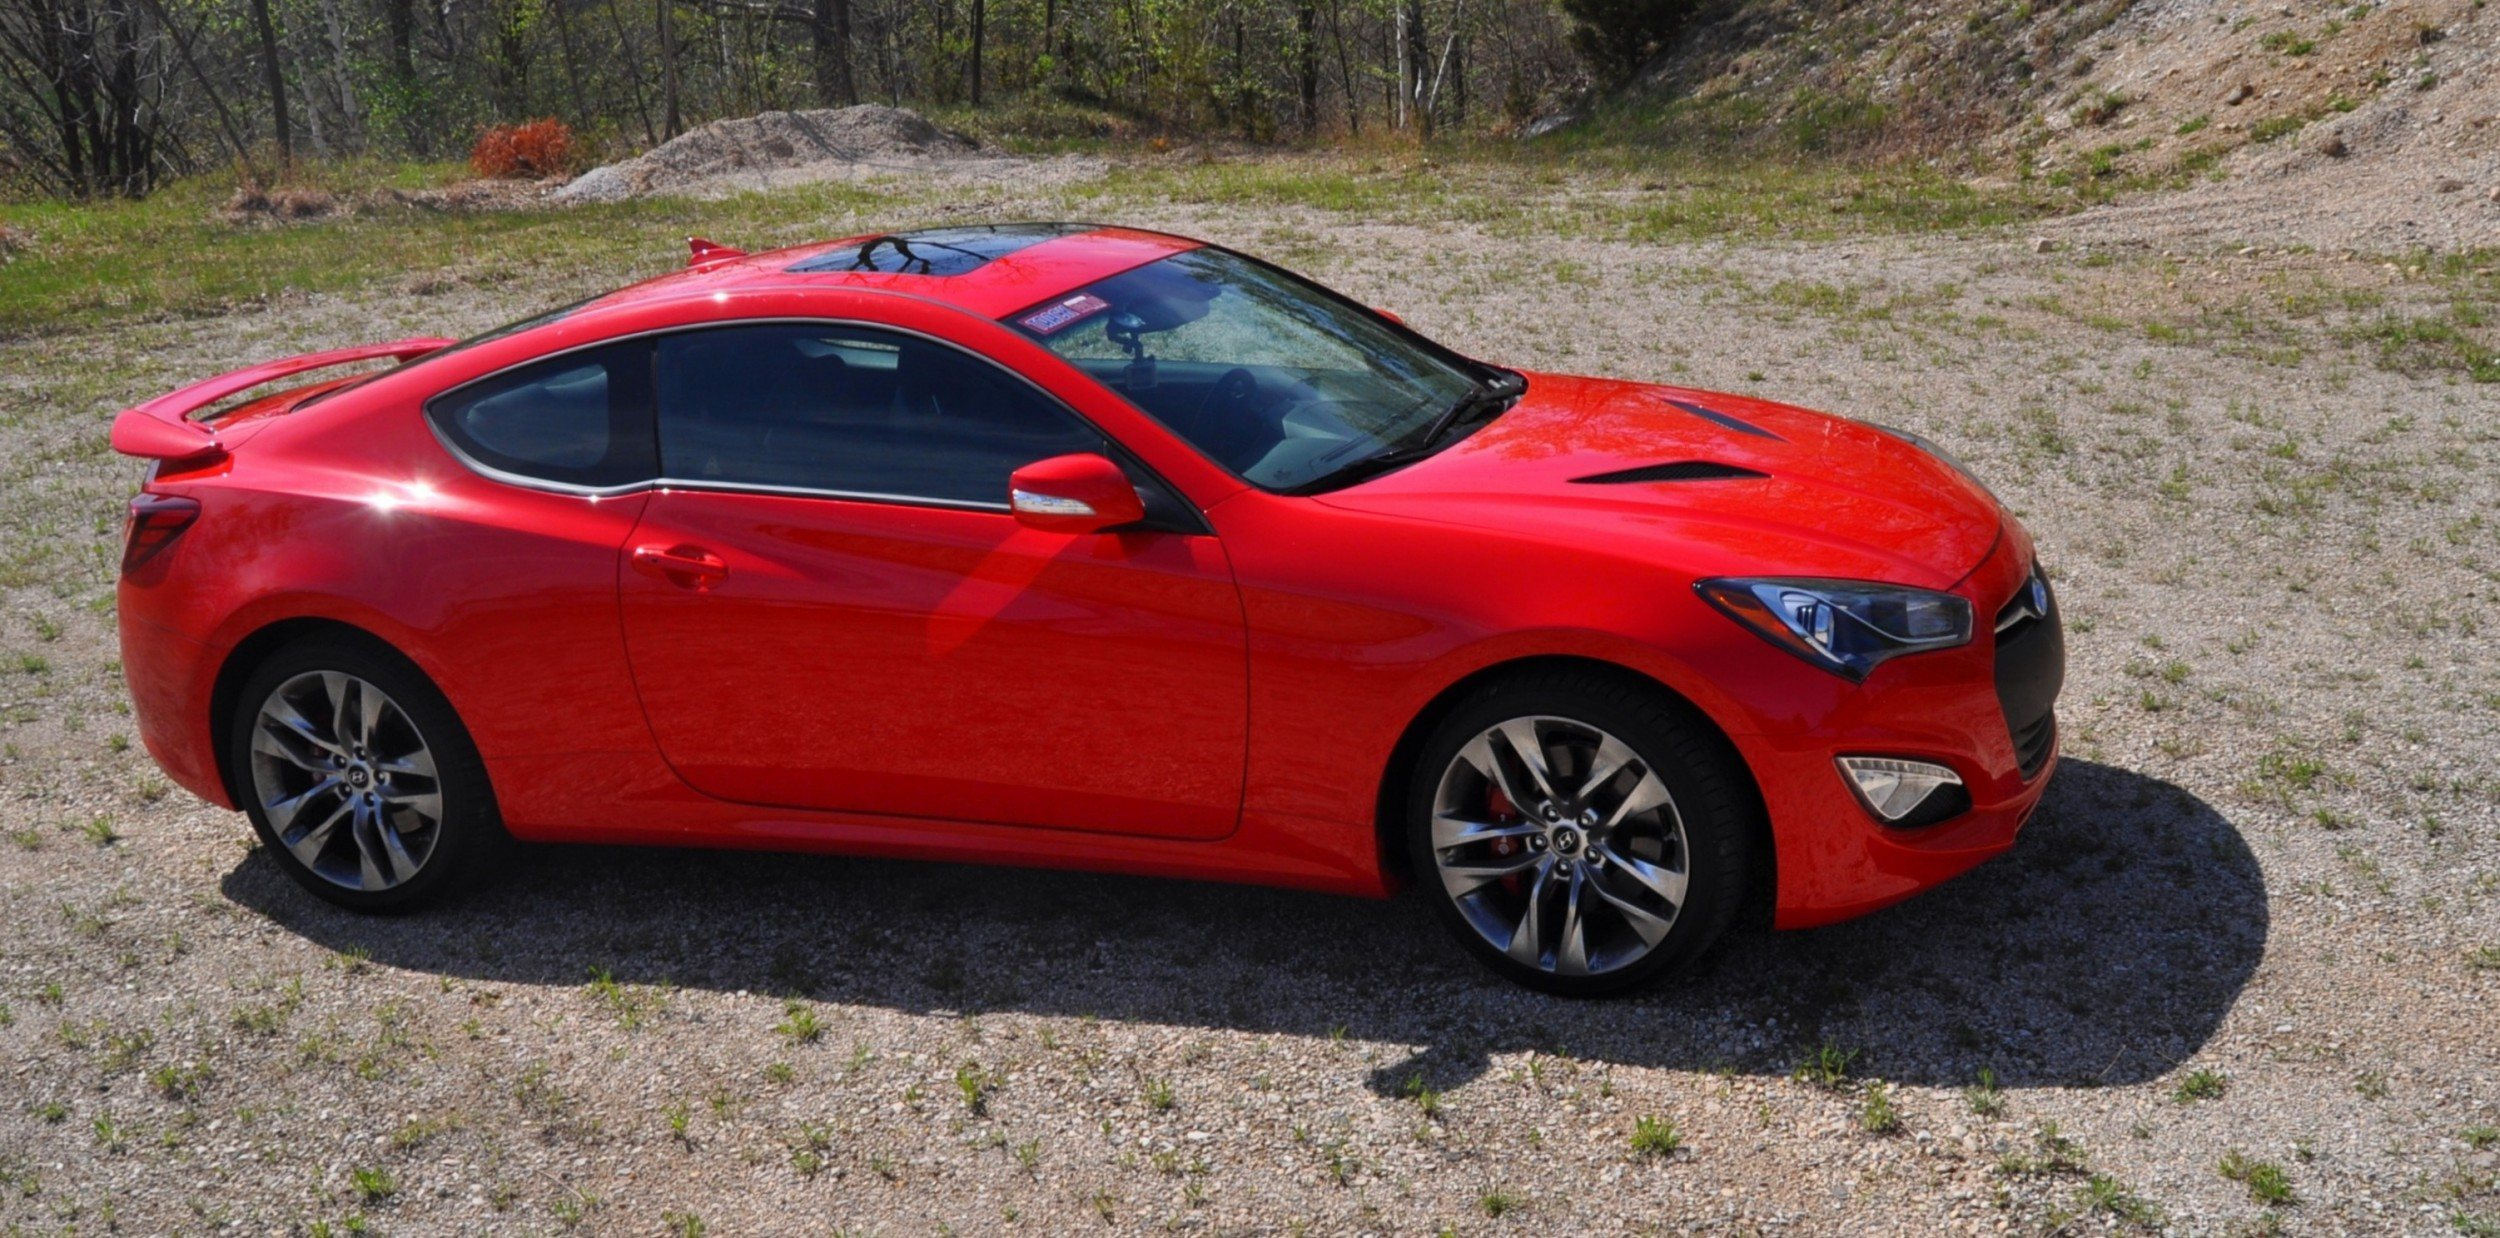 2014 Hyundai Genesis Coupe 3.8L V6 R-Spec - Road Test Review of FAST